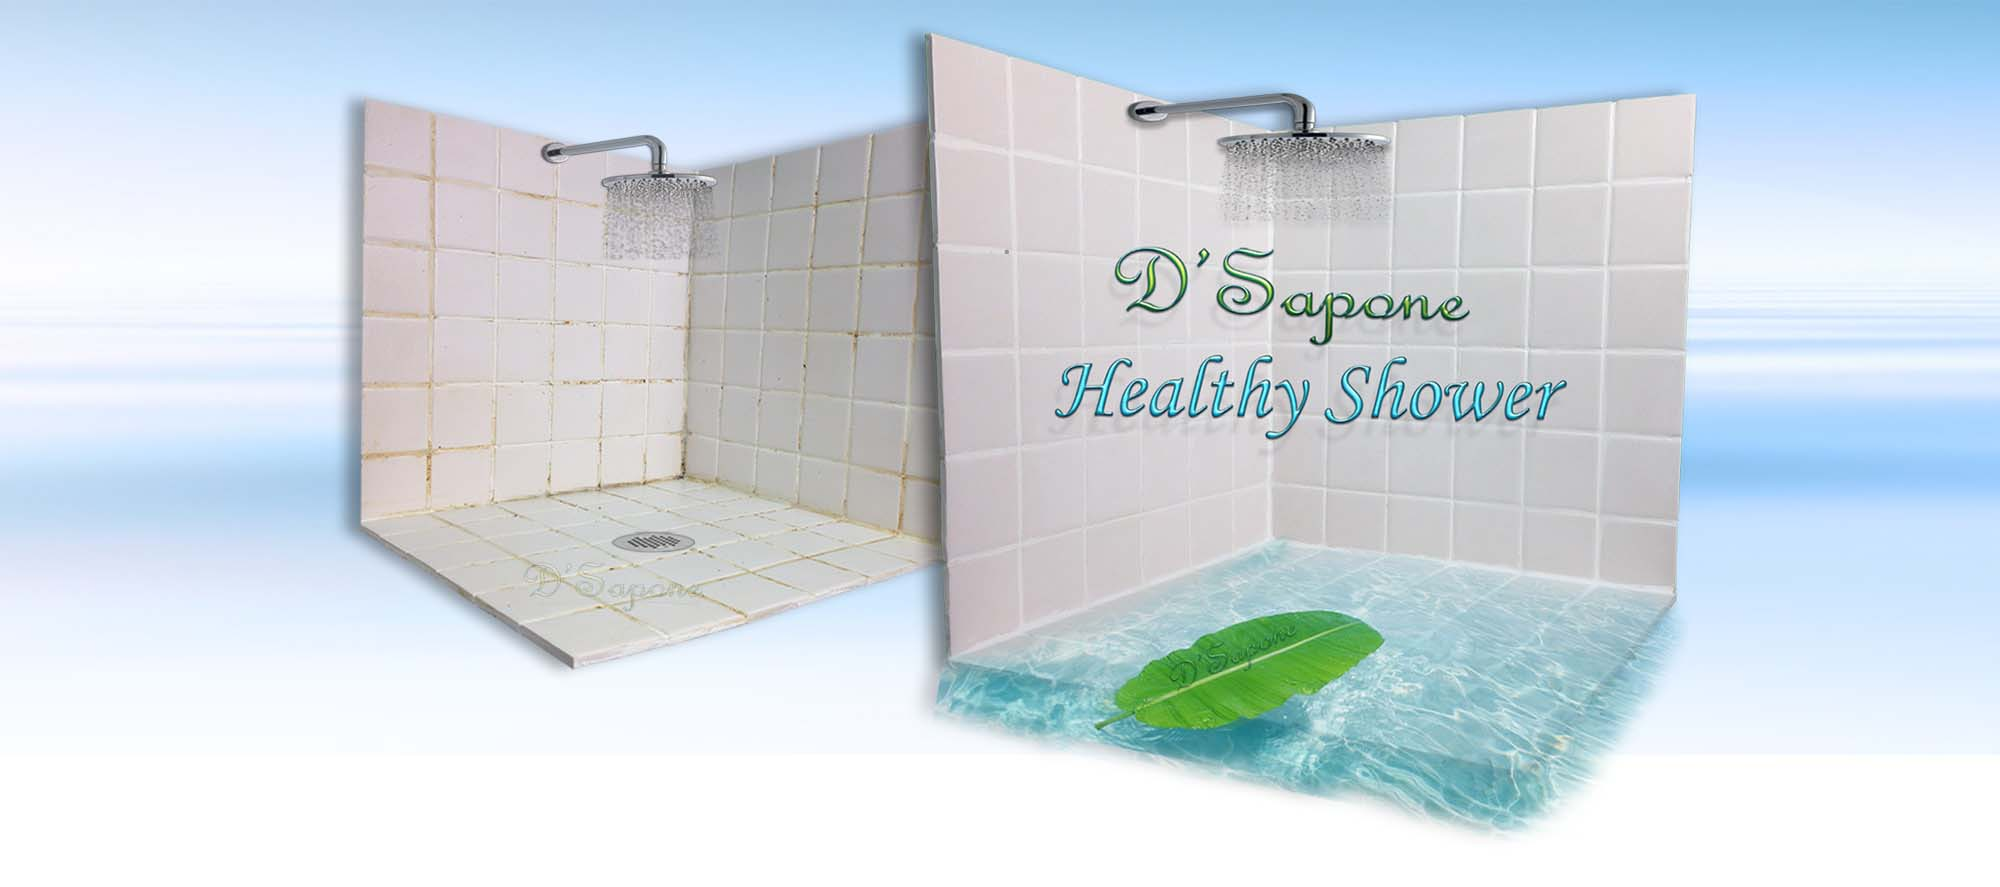 Experience a Healthy Shower